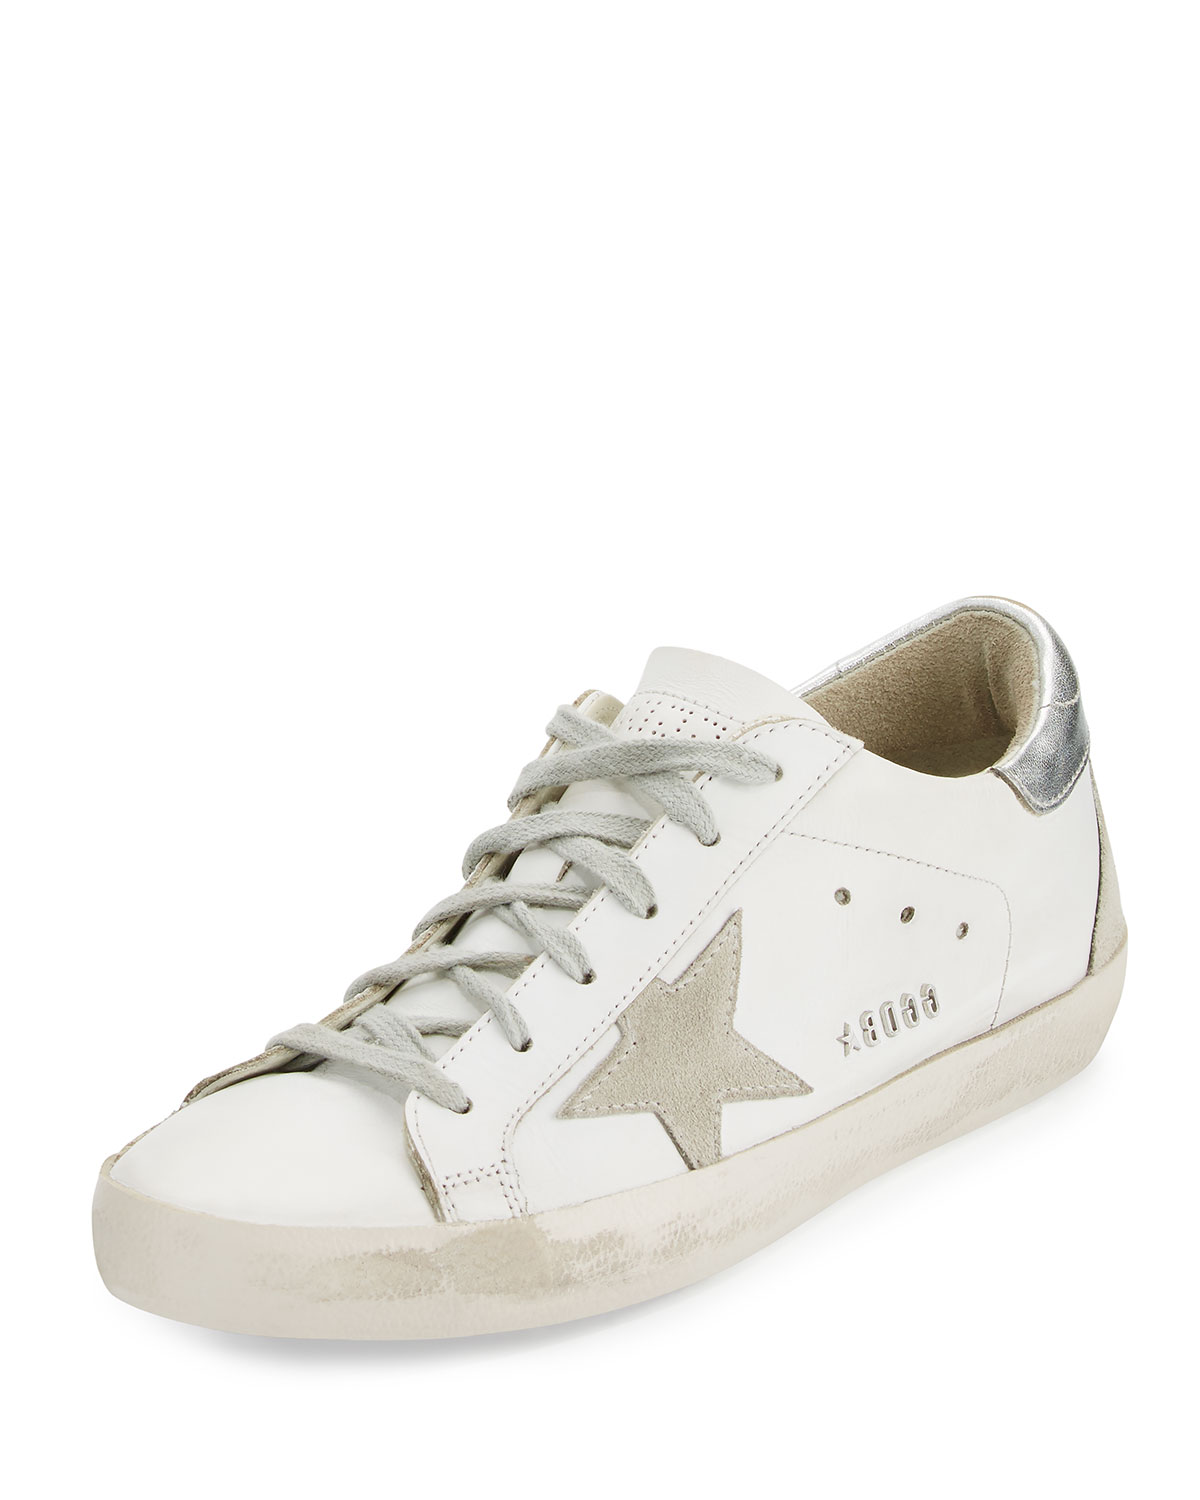 Golden Goose Distressed Leather Low-Top